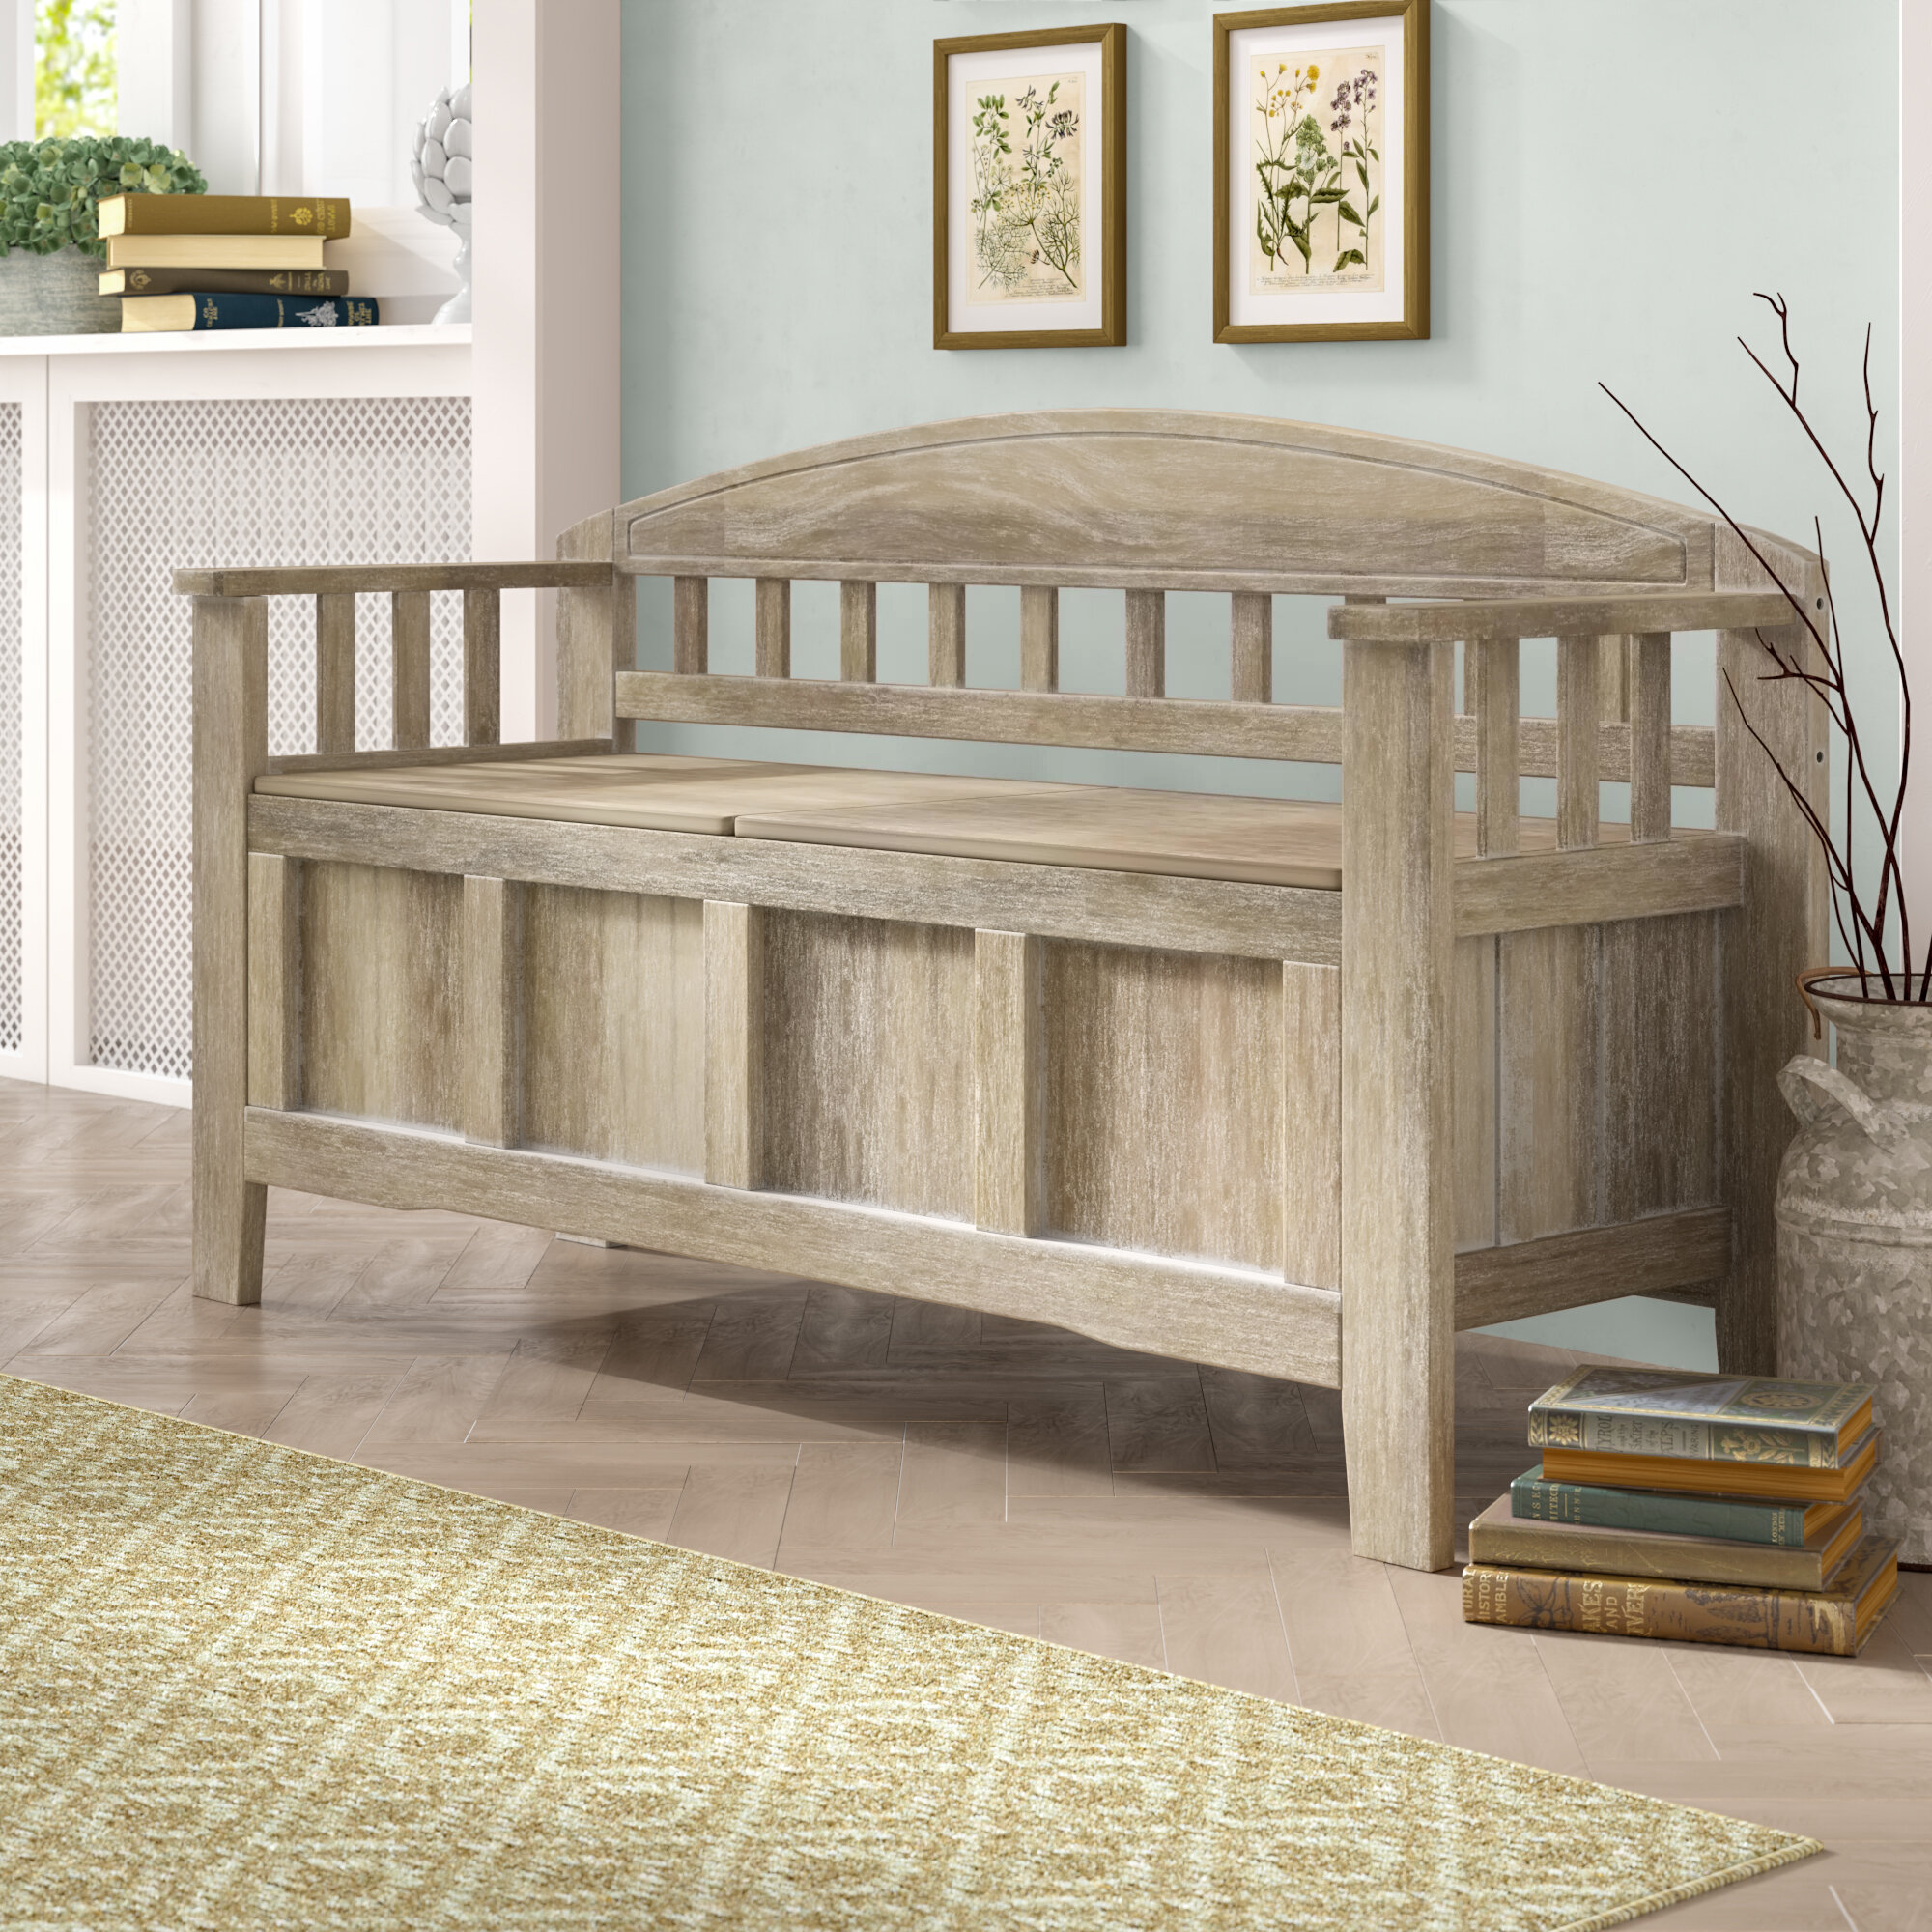 Picture of: Entryway Wooden Benches You Ll Love In 2020 Wayfair